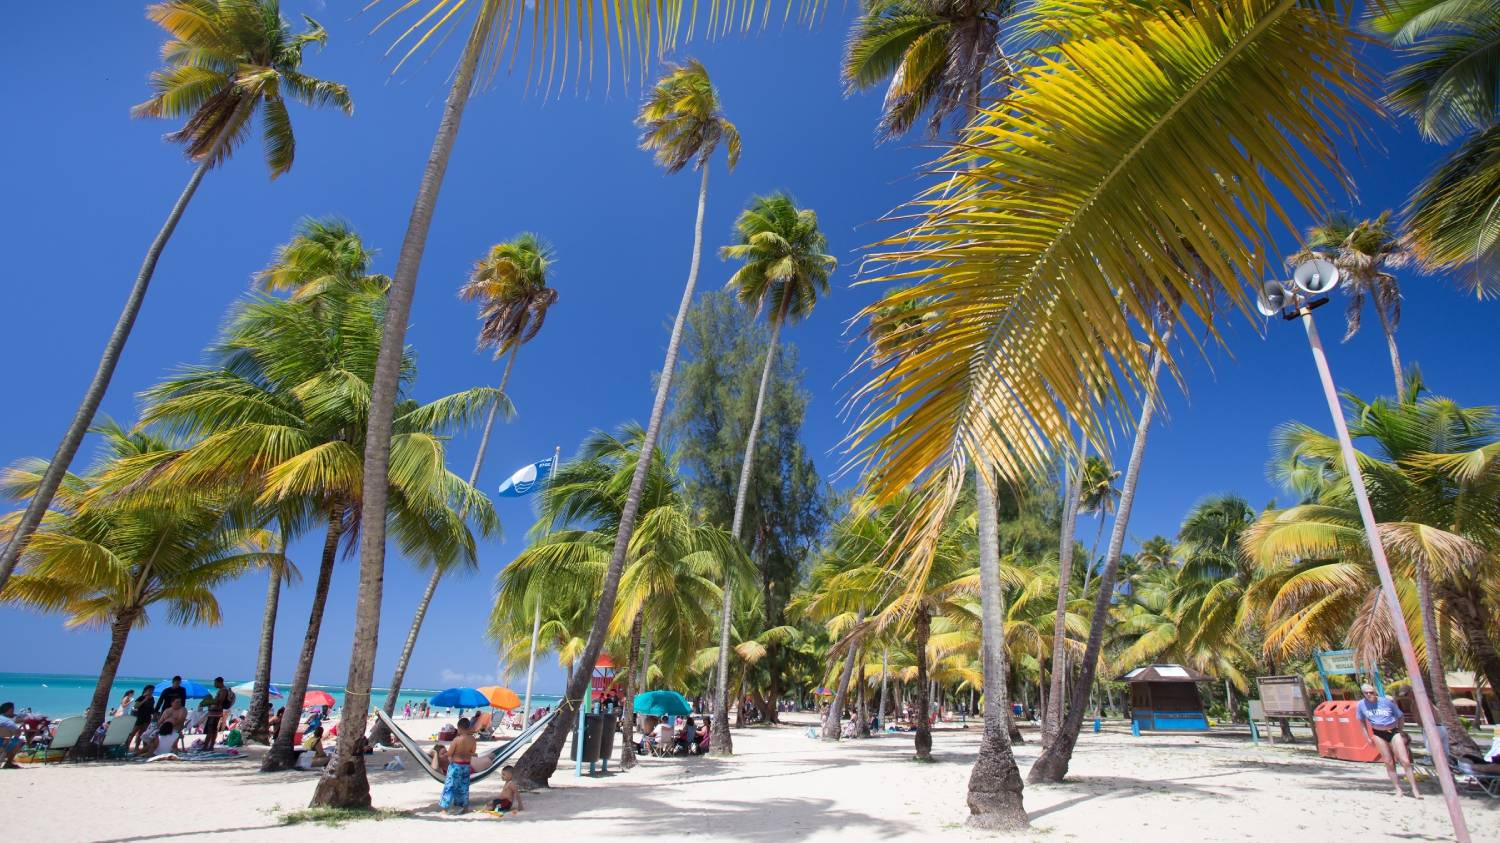 Luquillo - The Best Places To Visit In Puerto Rico